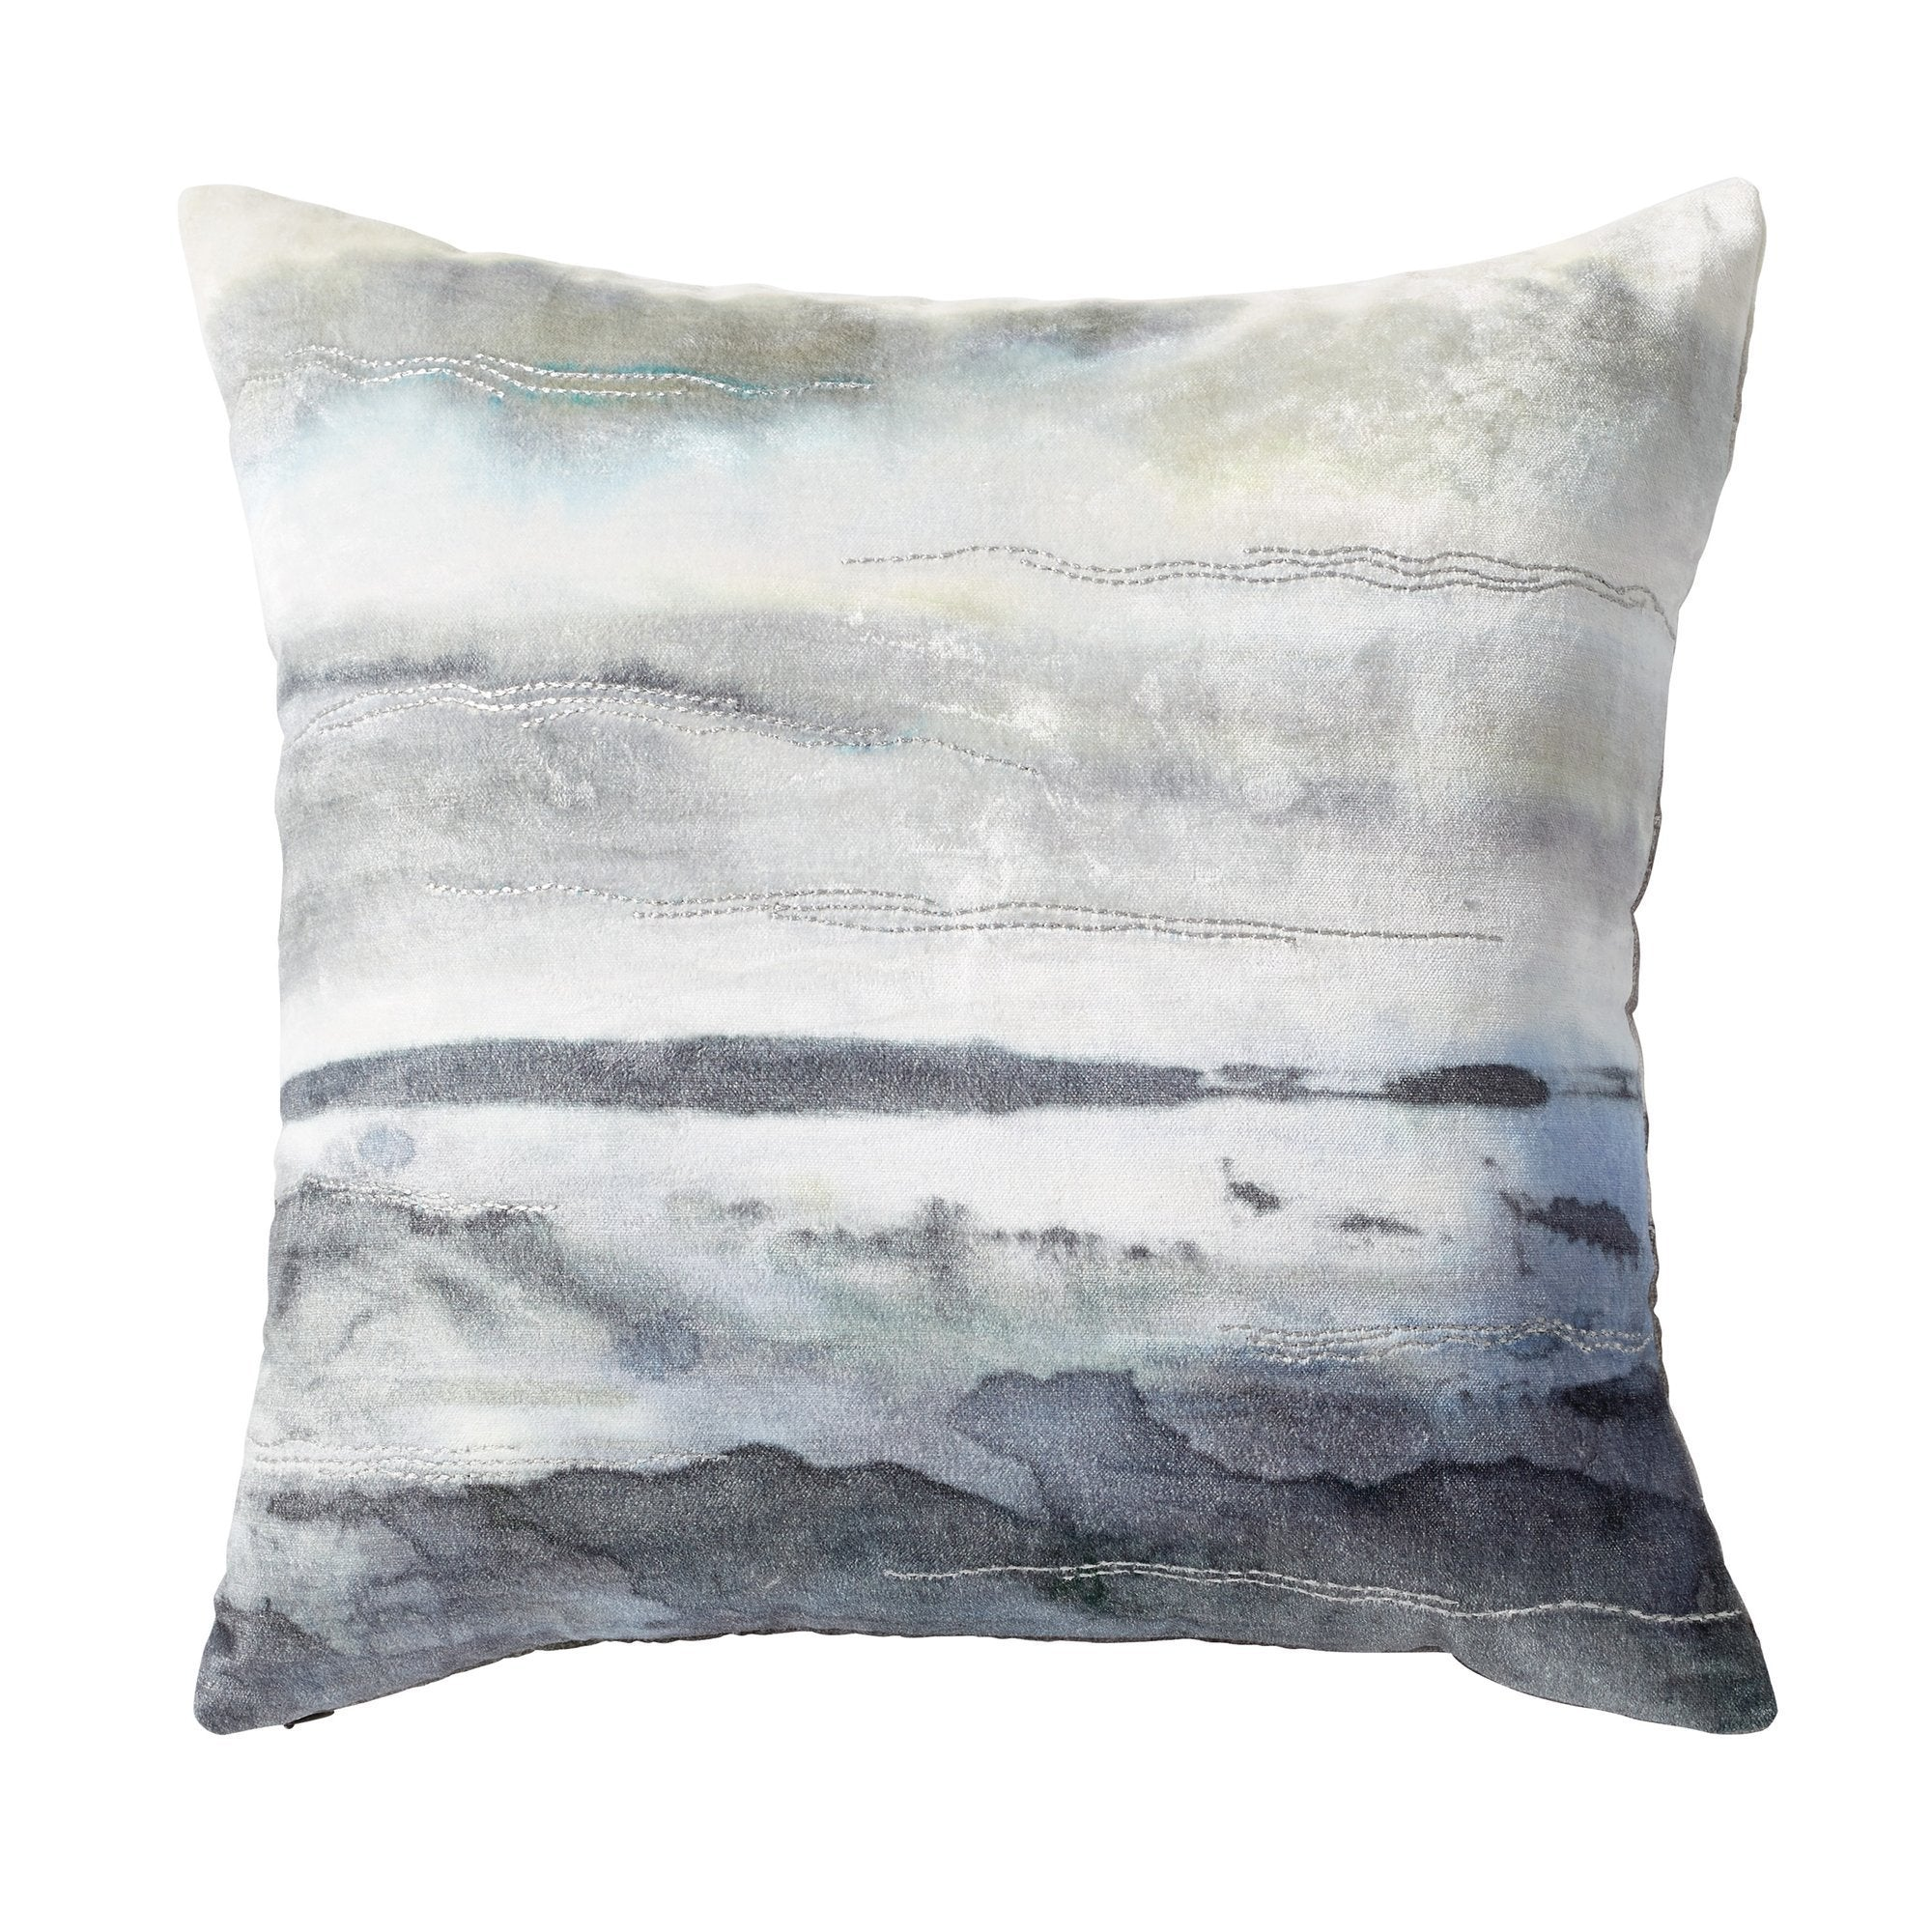 Brushed Landscape Decorative Pillow